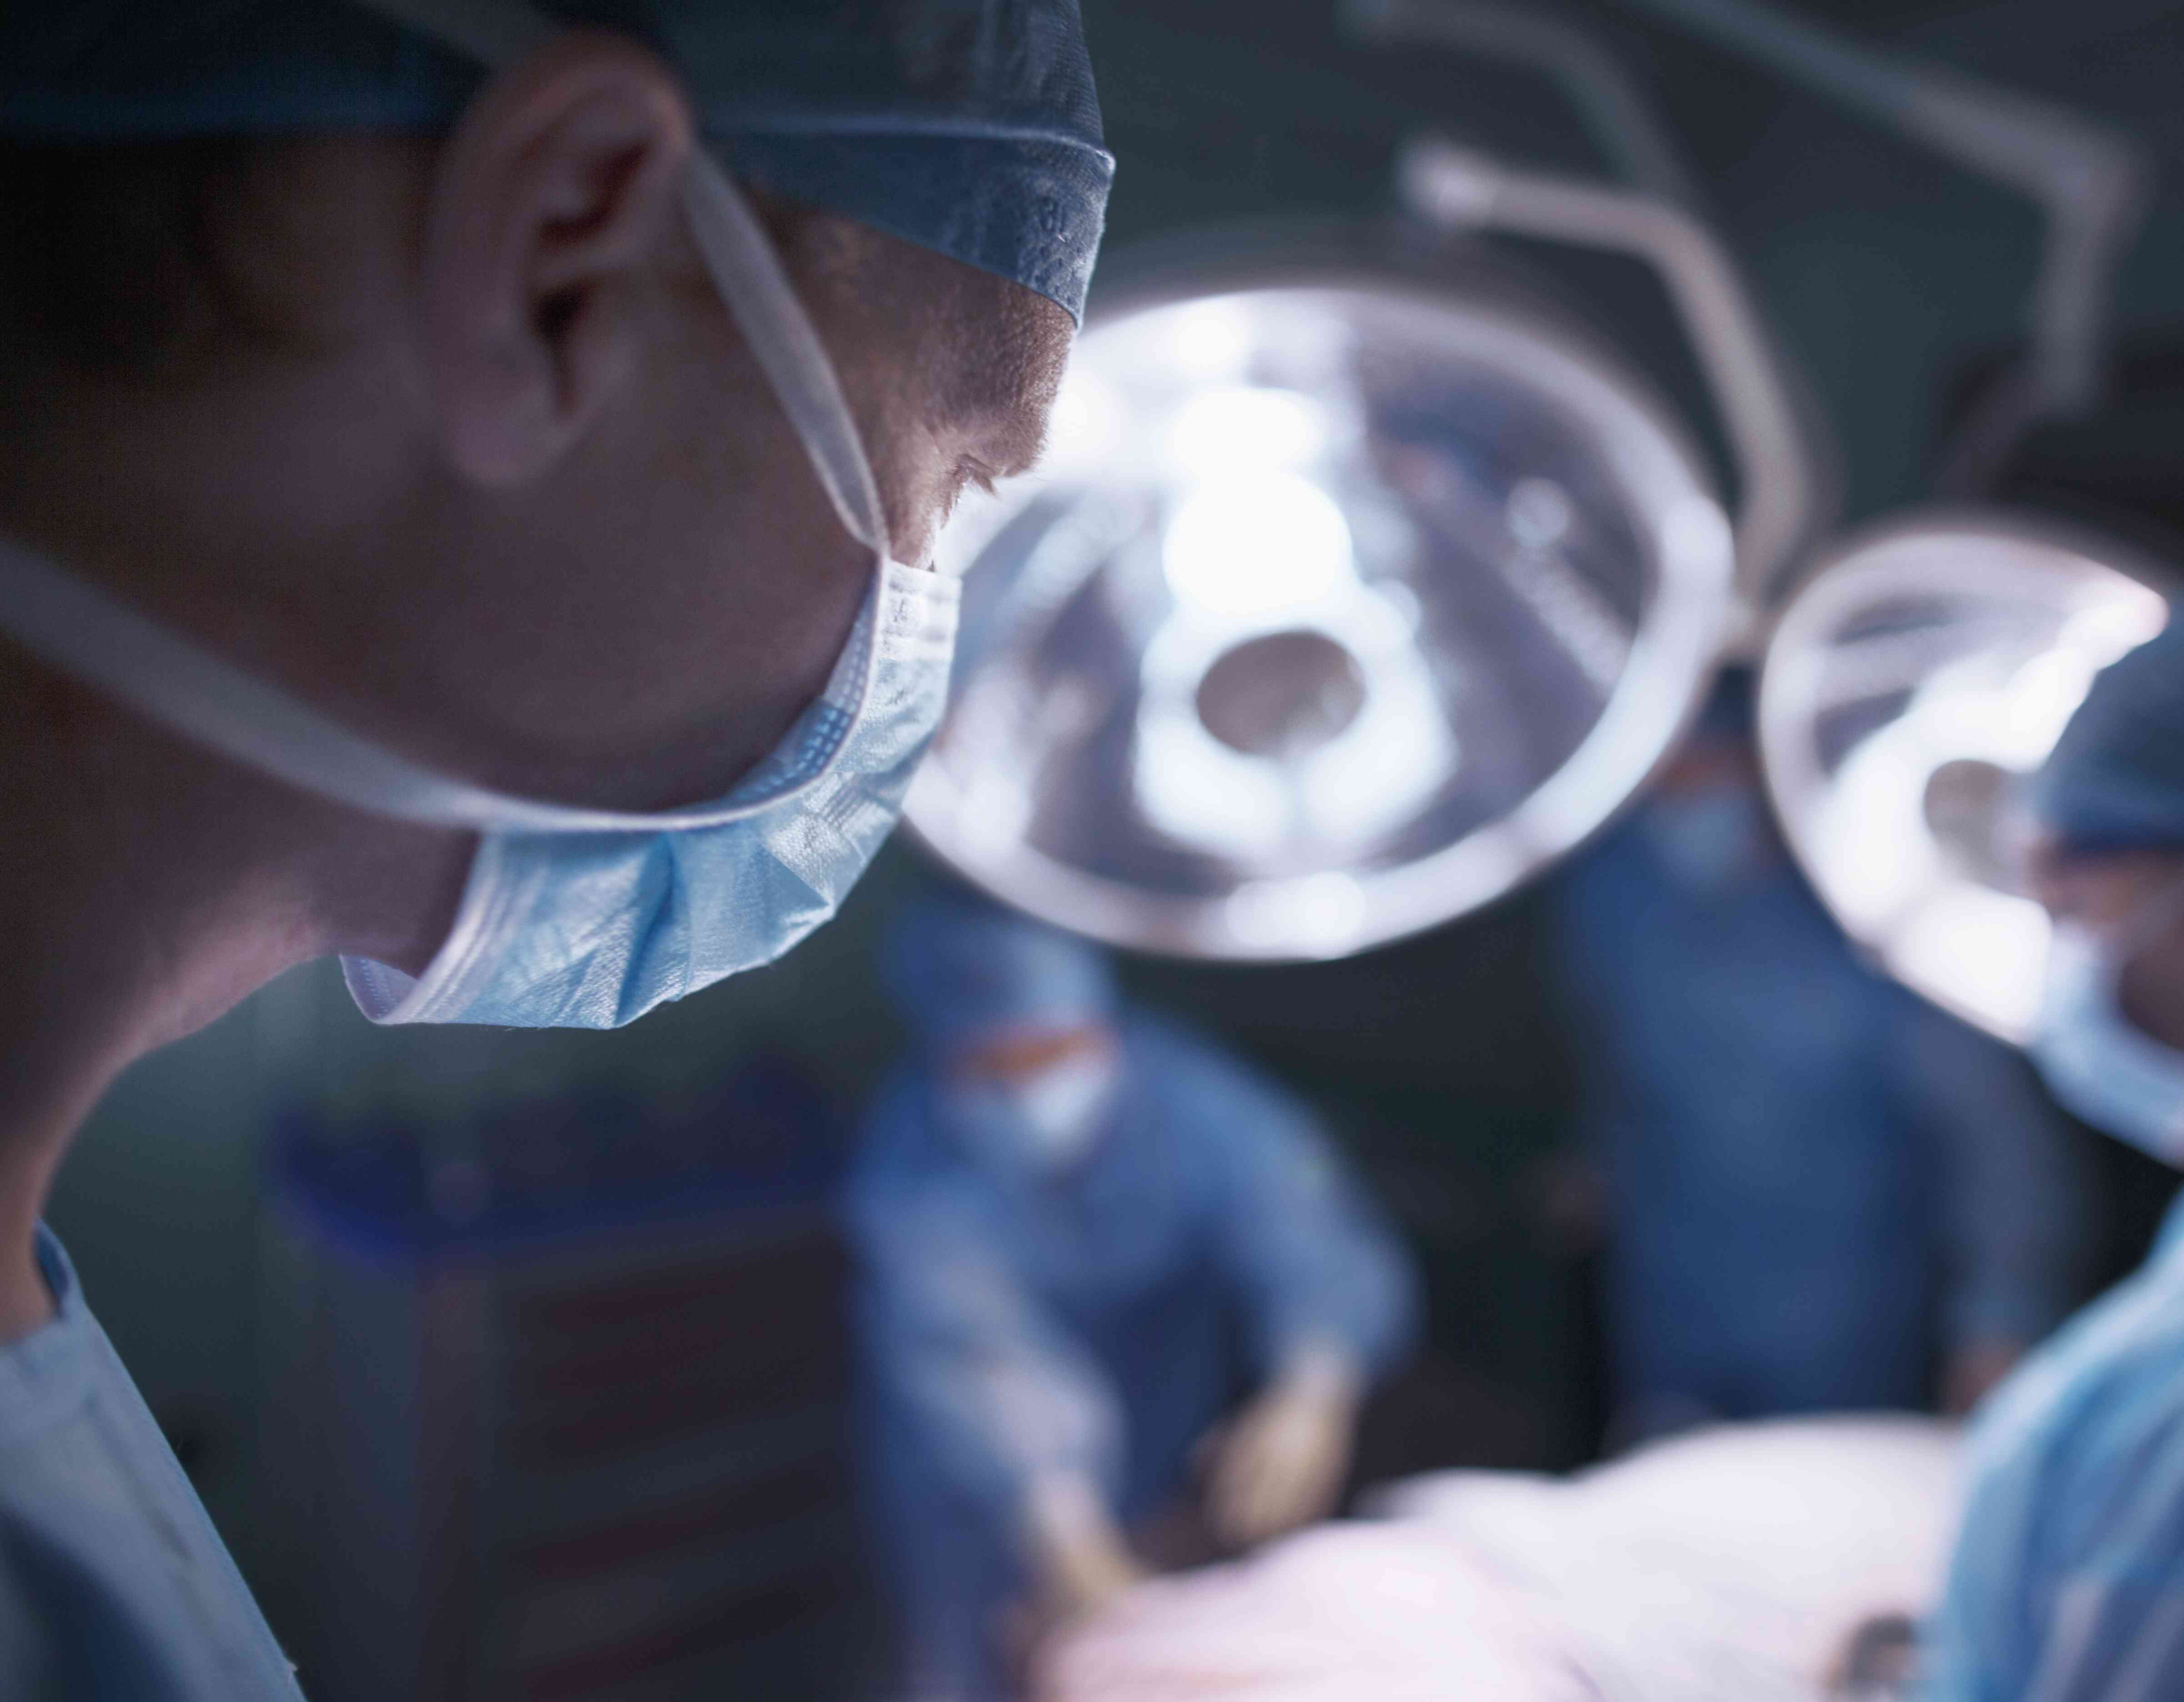 Doctors in hospital operating room